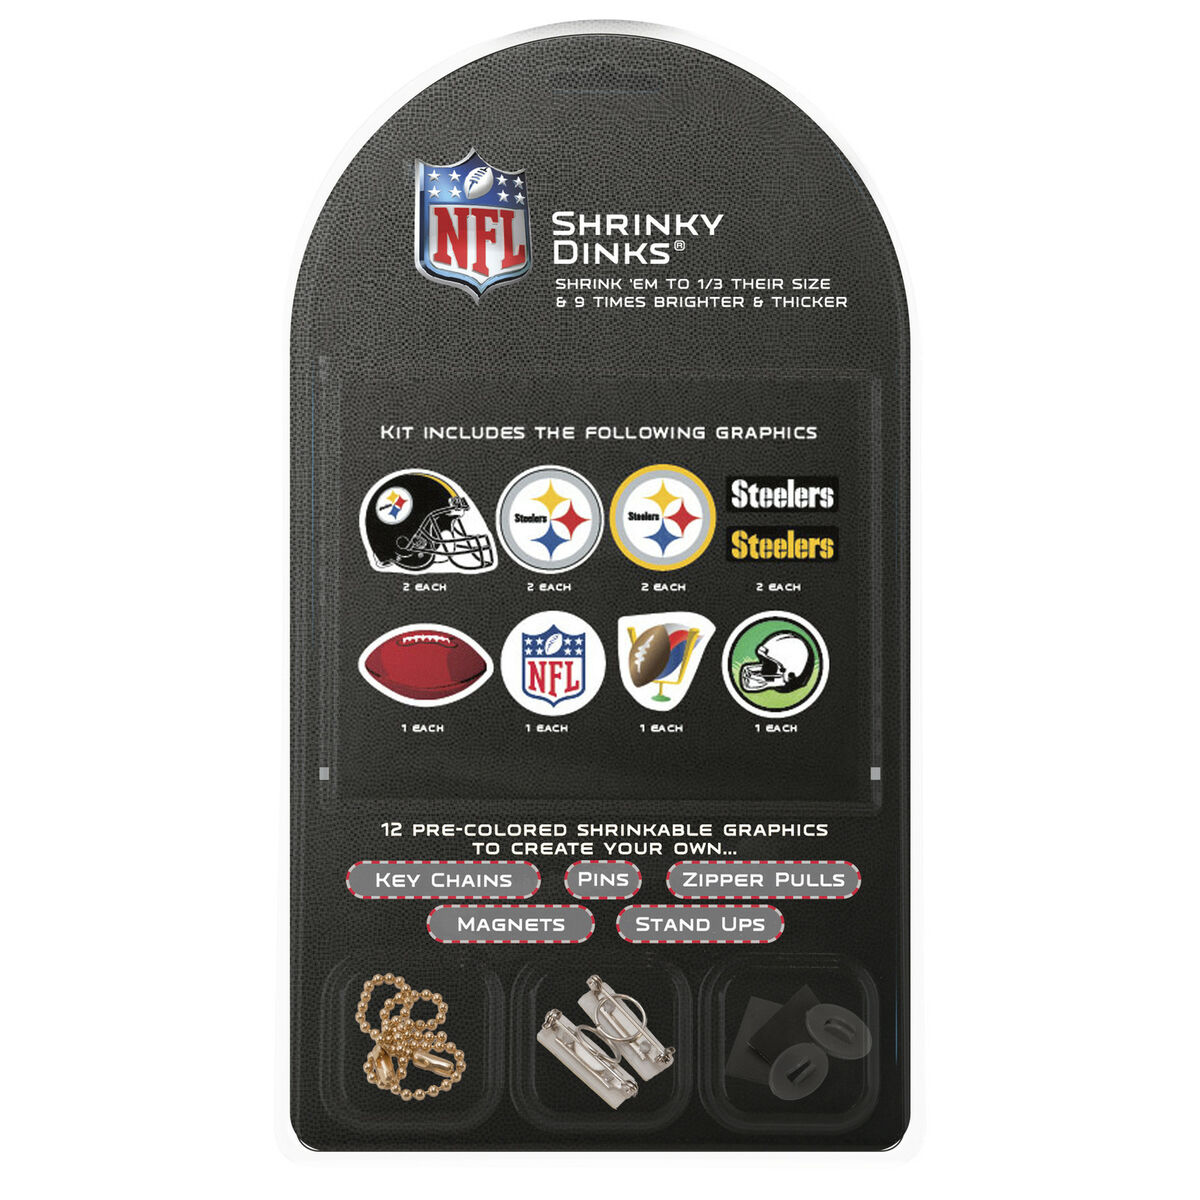 PITTSBURGH STEELERS SHRINKY DINKS KIT KEY CHAINS PINS MAGNETS ZIPPERS